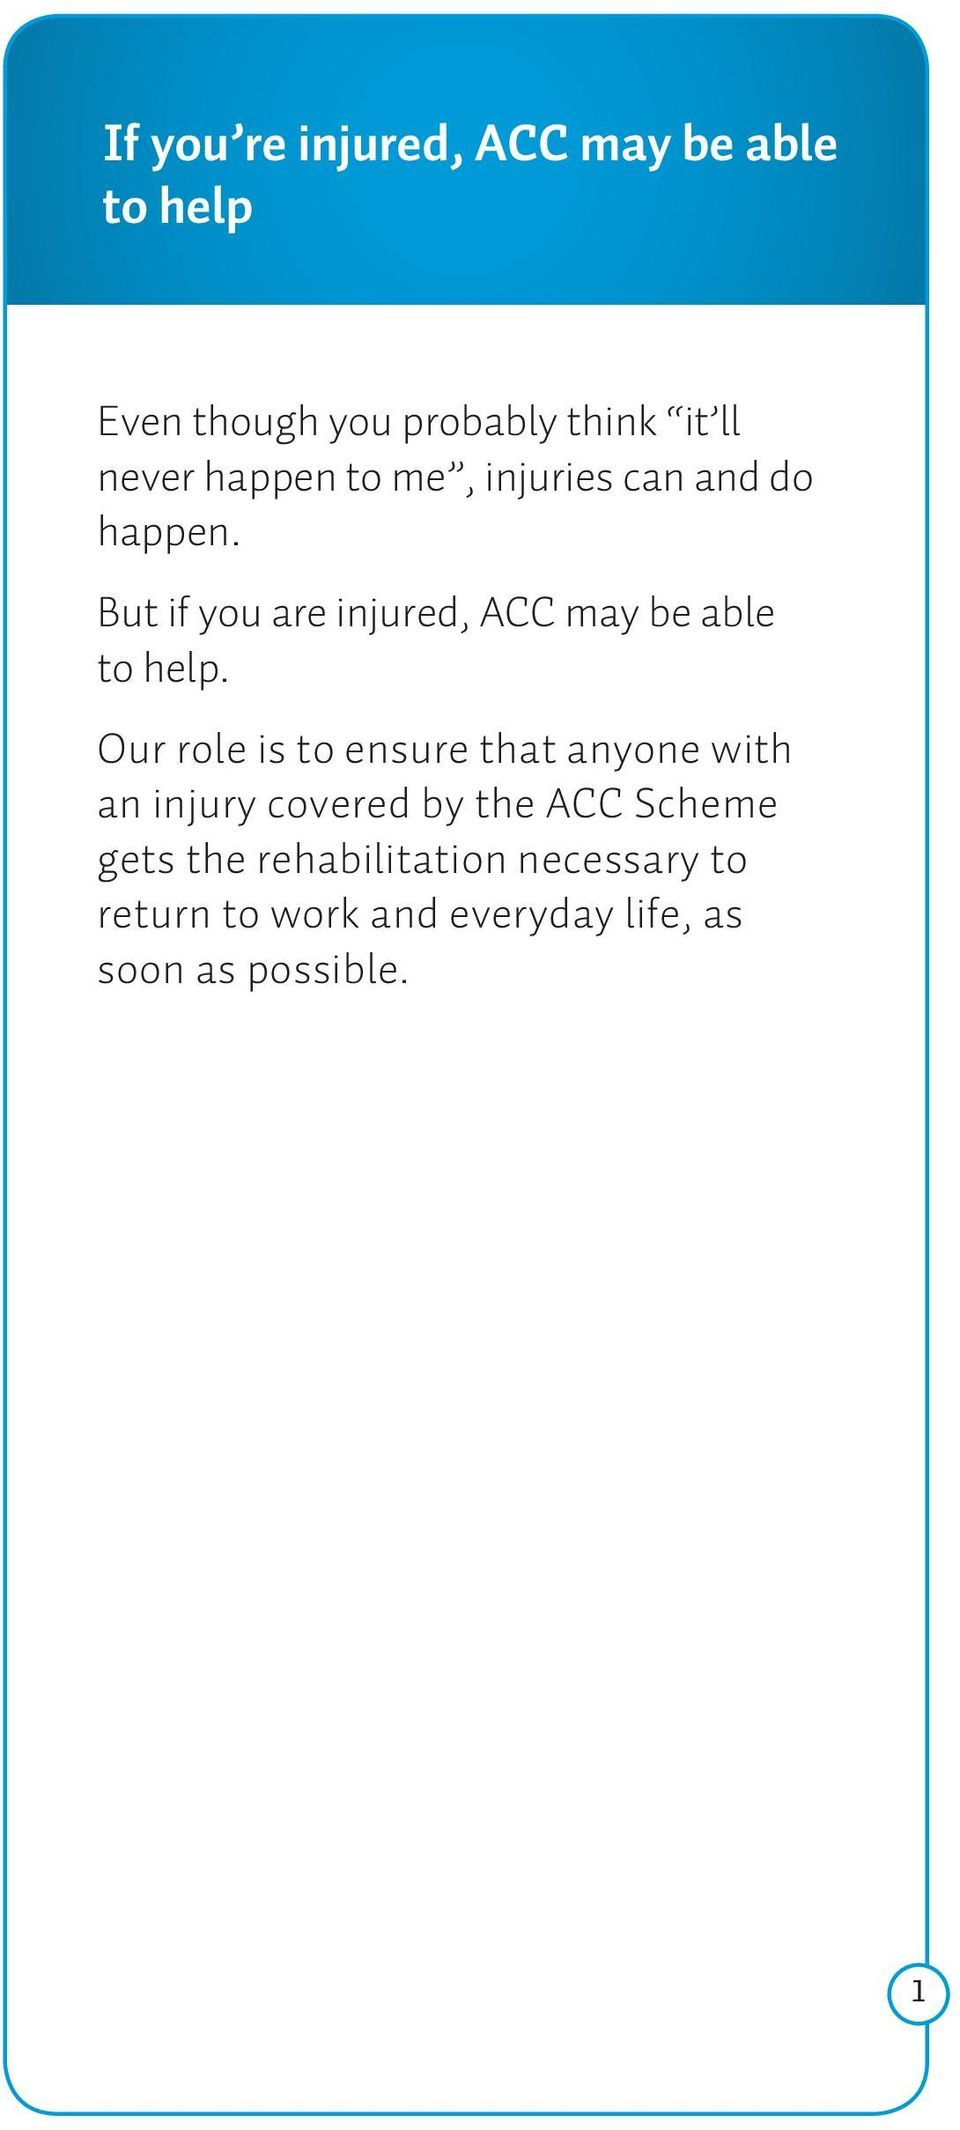 But if you are injured, ACC may be able to help.